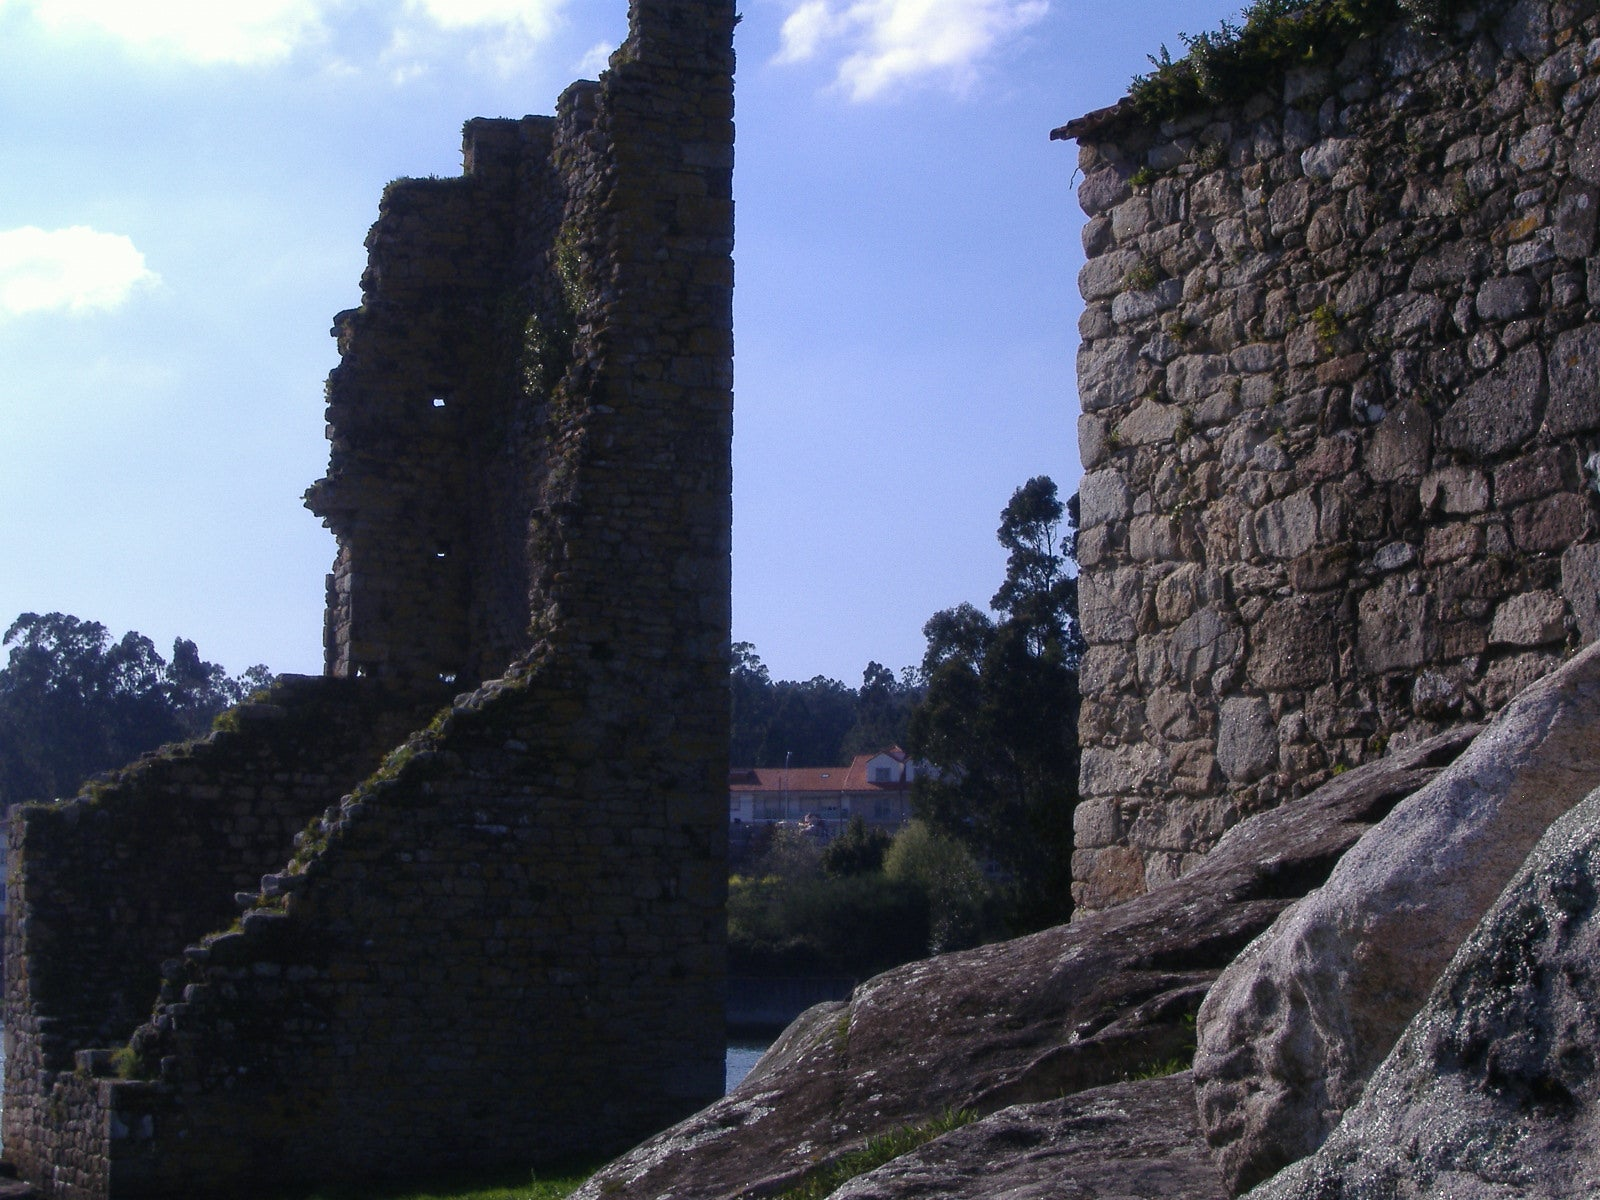 West towers